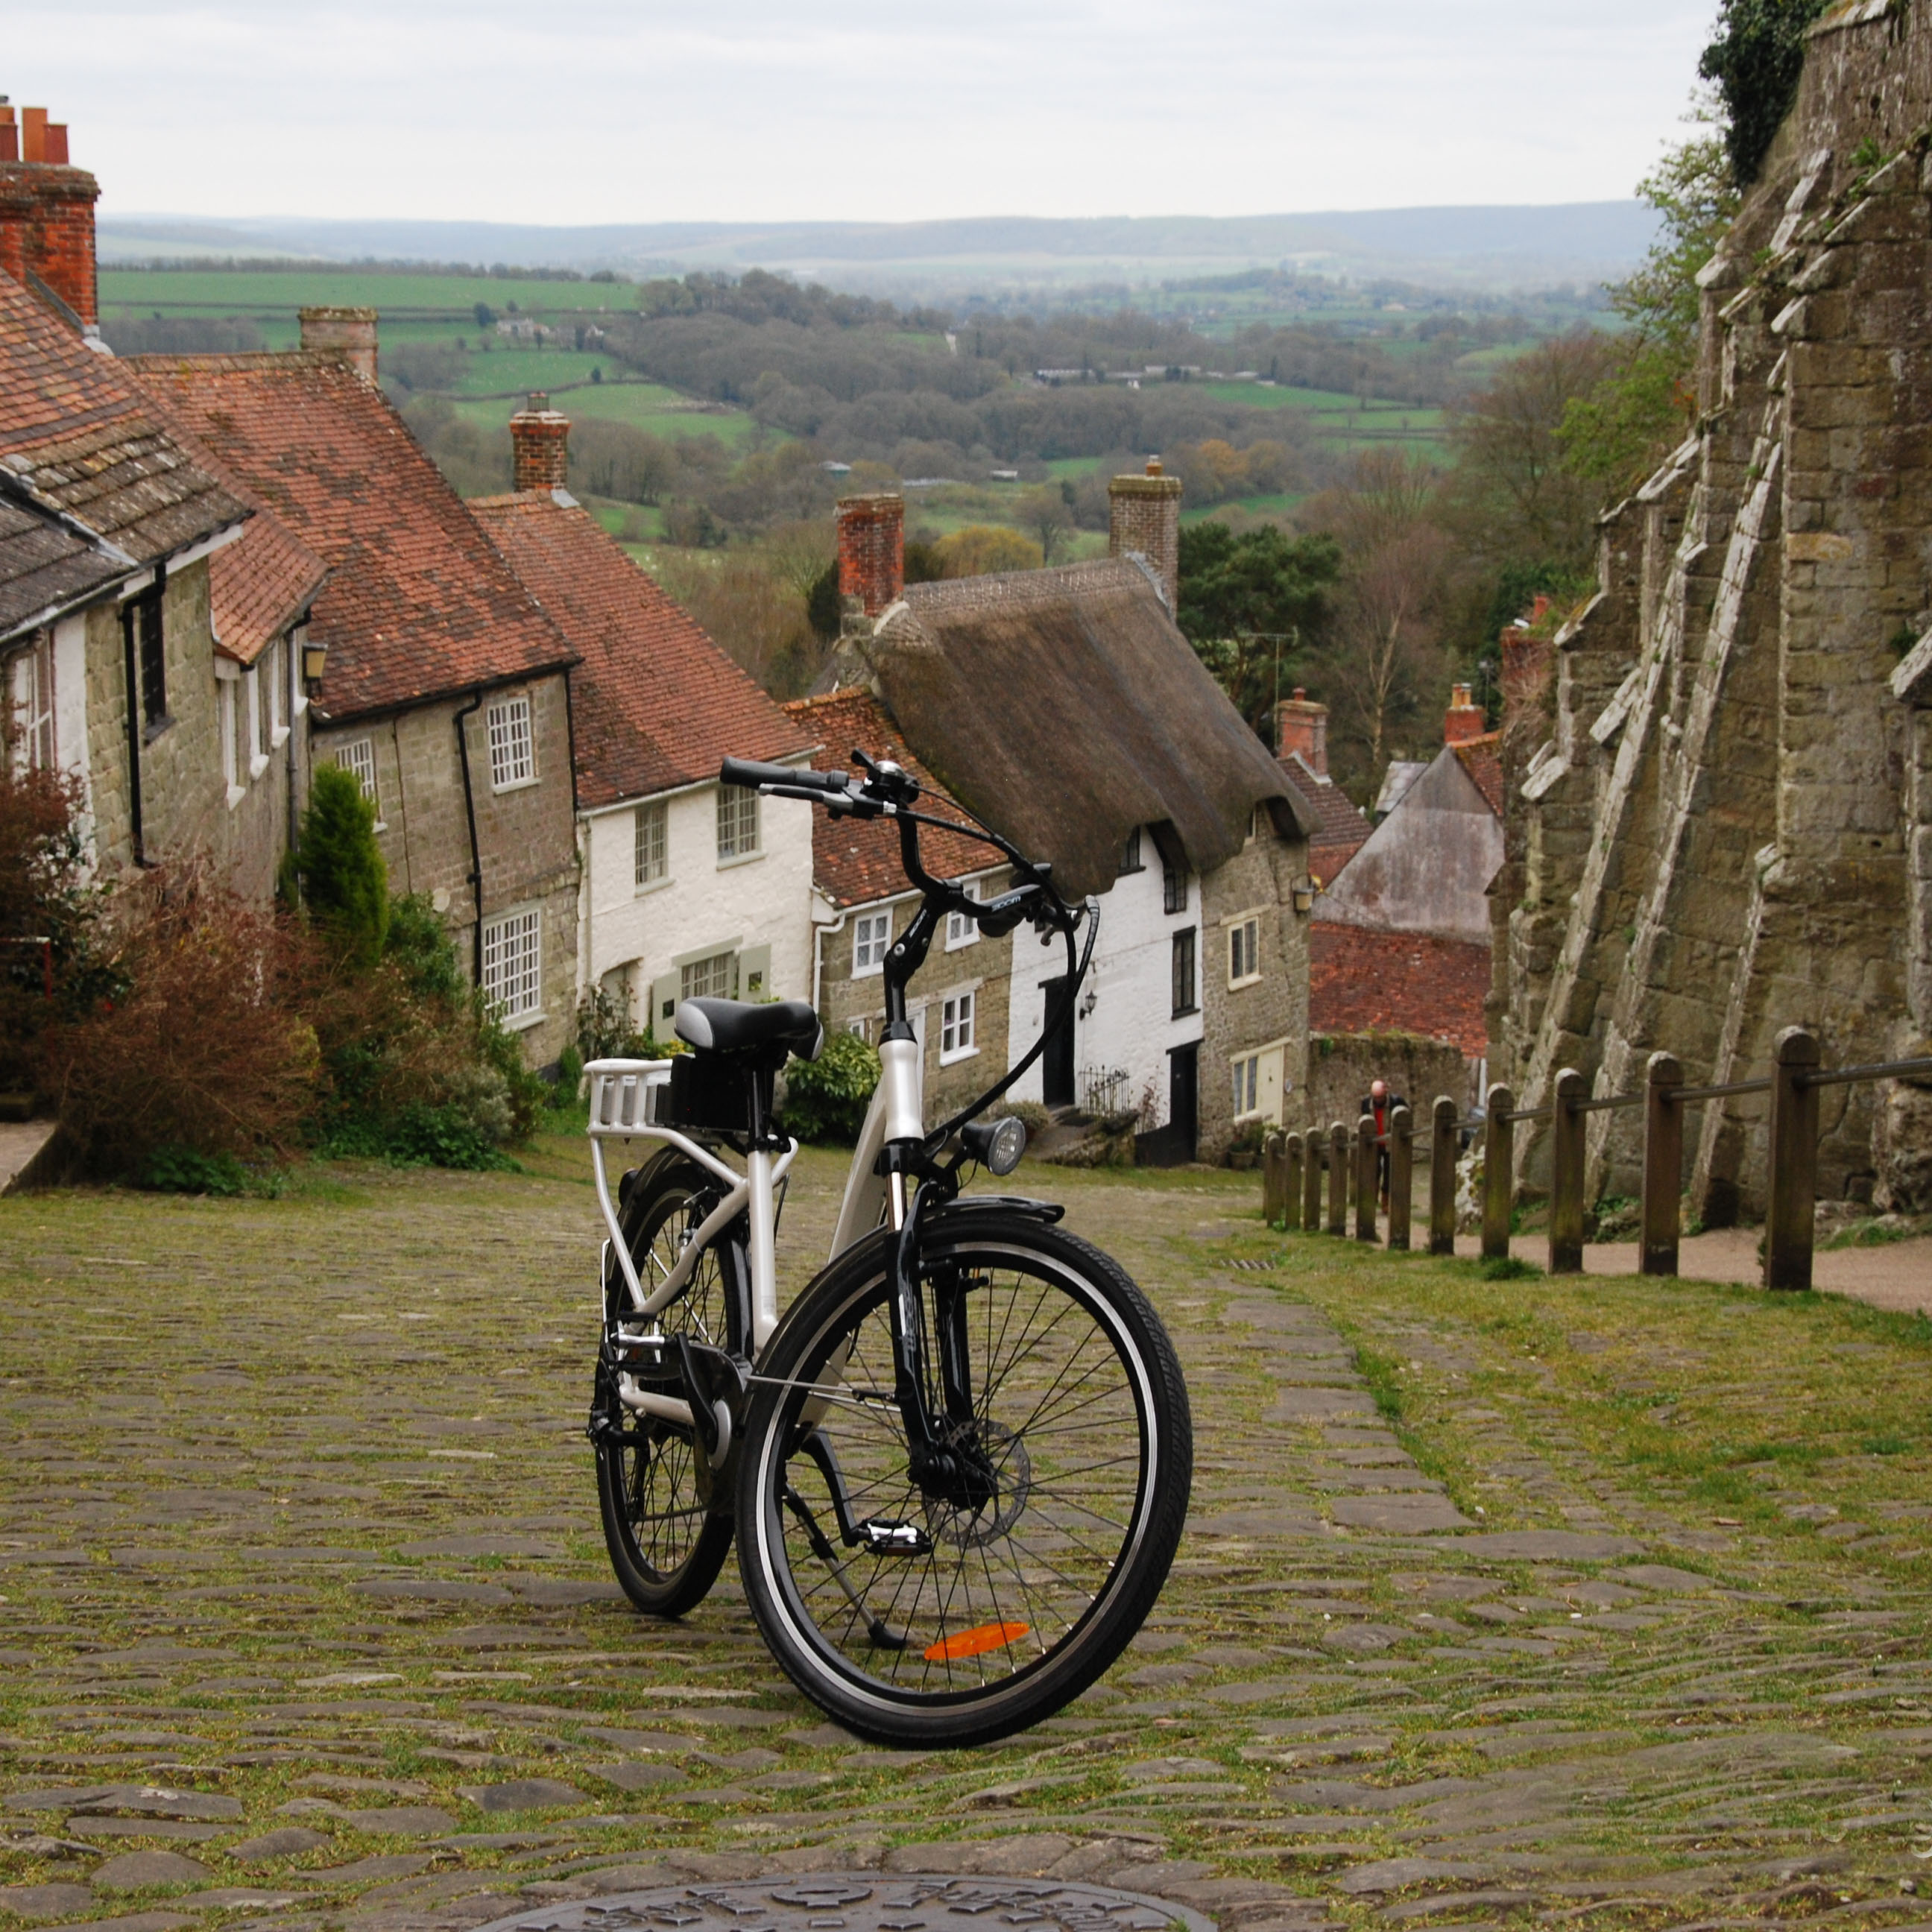 Ex Demo RooDog Chic Electric Bike on Gold Hill in Shaftesbury Dorset